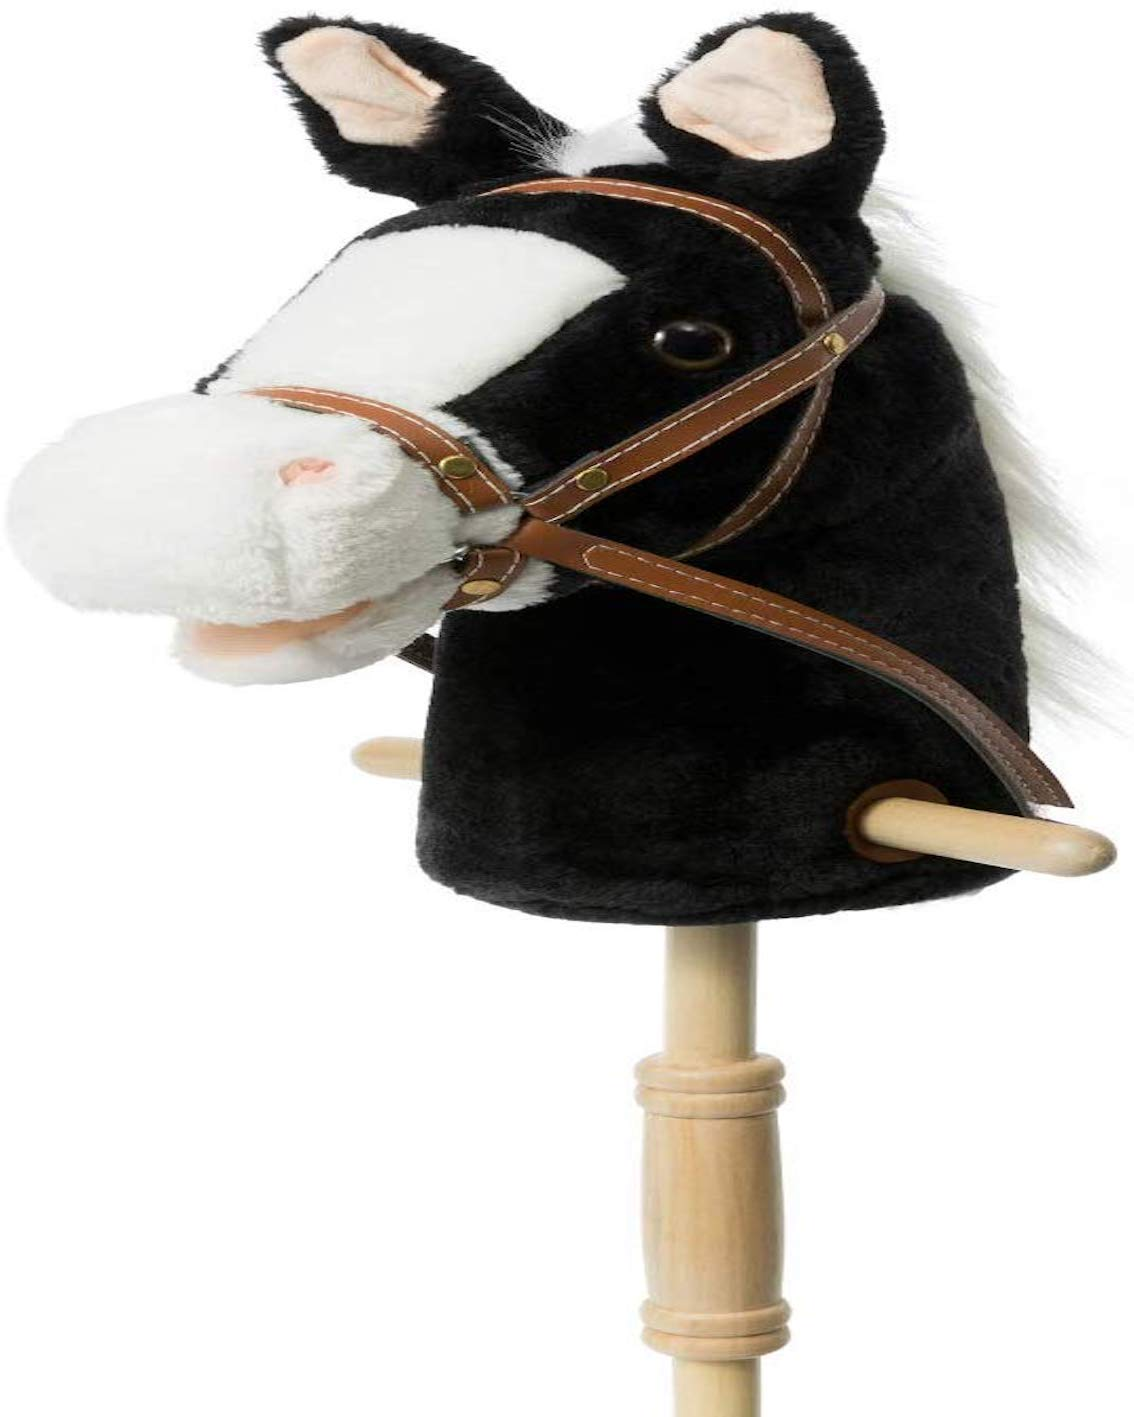 Hot Europe Style Plush Ride On Hobby Horse Stick With Horse Neigh And Gallop Sound Buy Ride On Horse Toy Europe Horse Stick Supplier Horse Head Stick Product On Alibaba Com